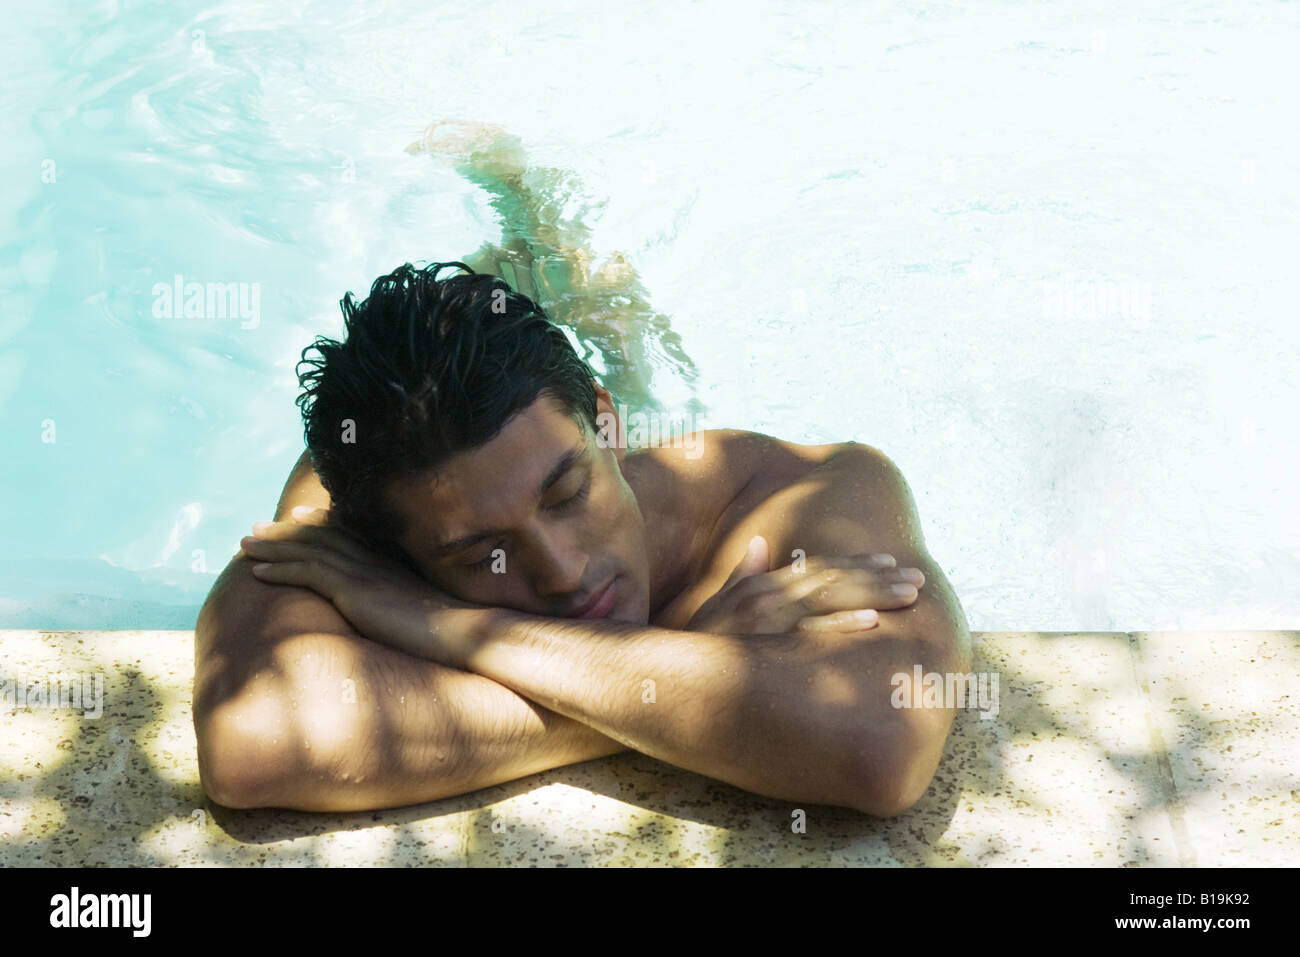 Man resting head on arms on side of swimming pool, eyes closed - Stock Image